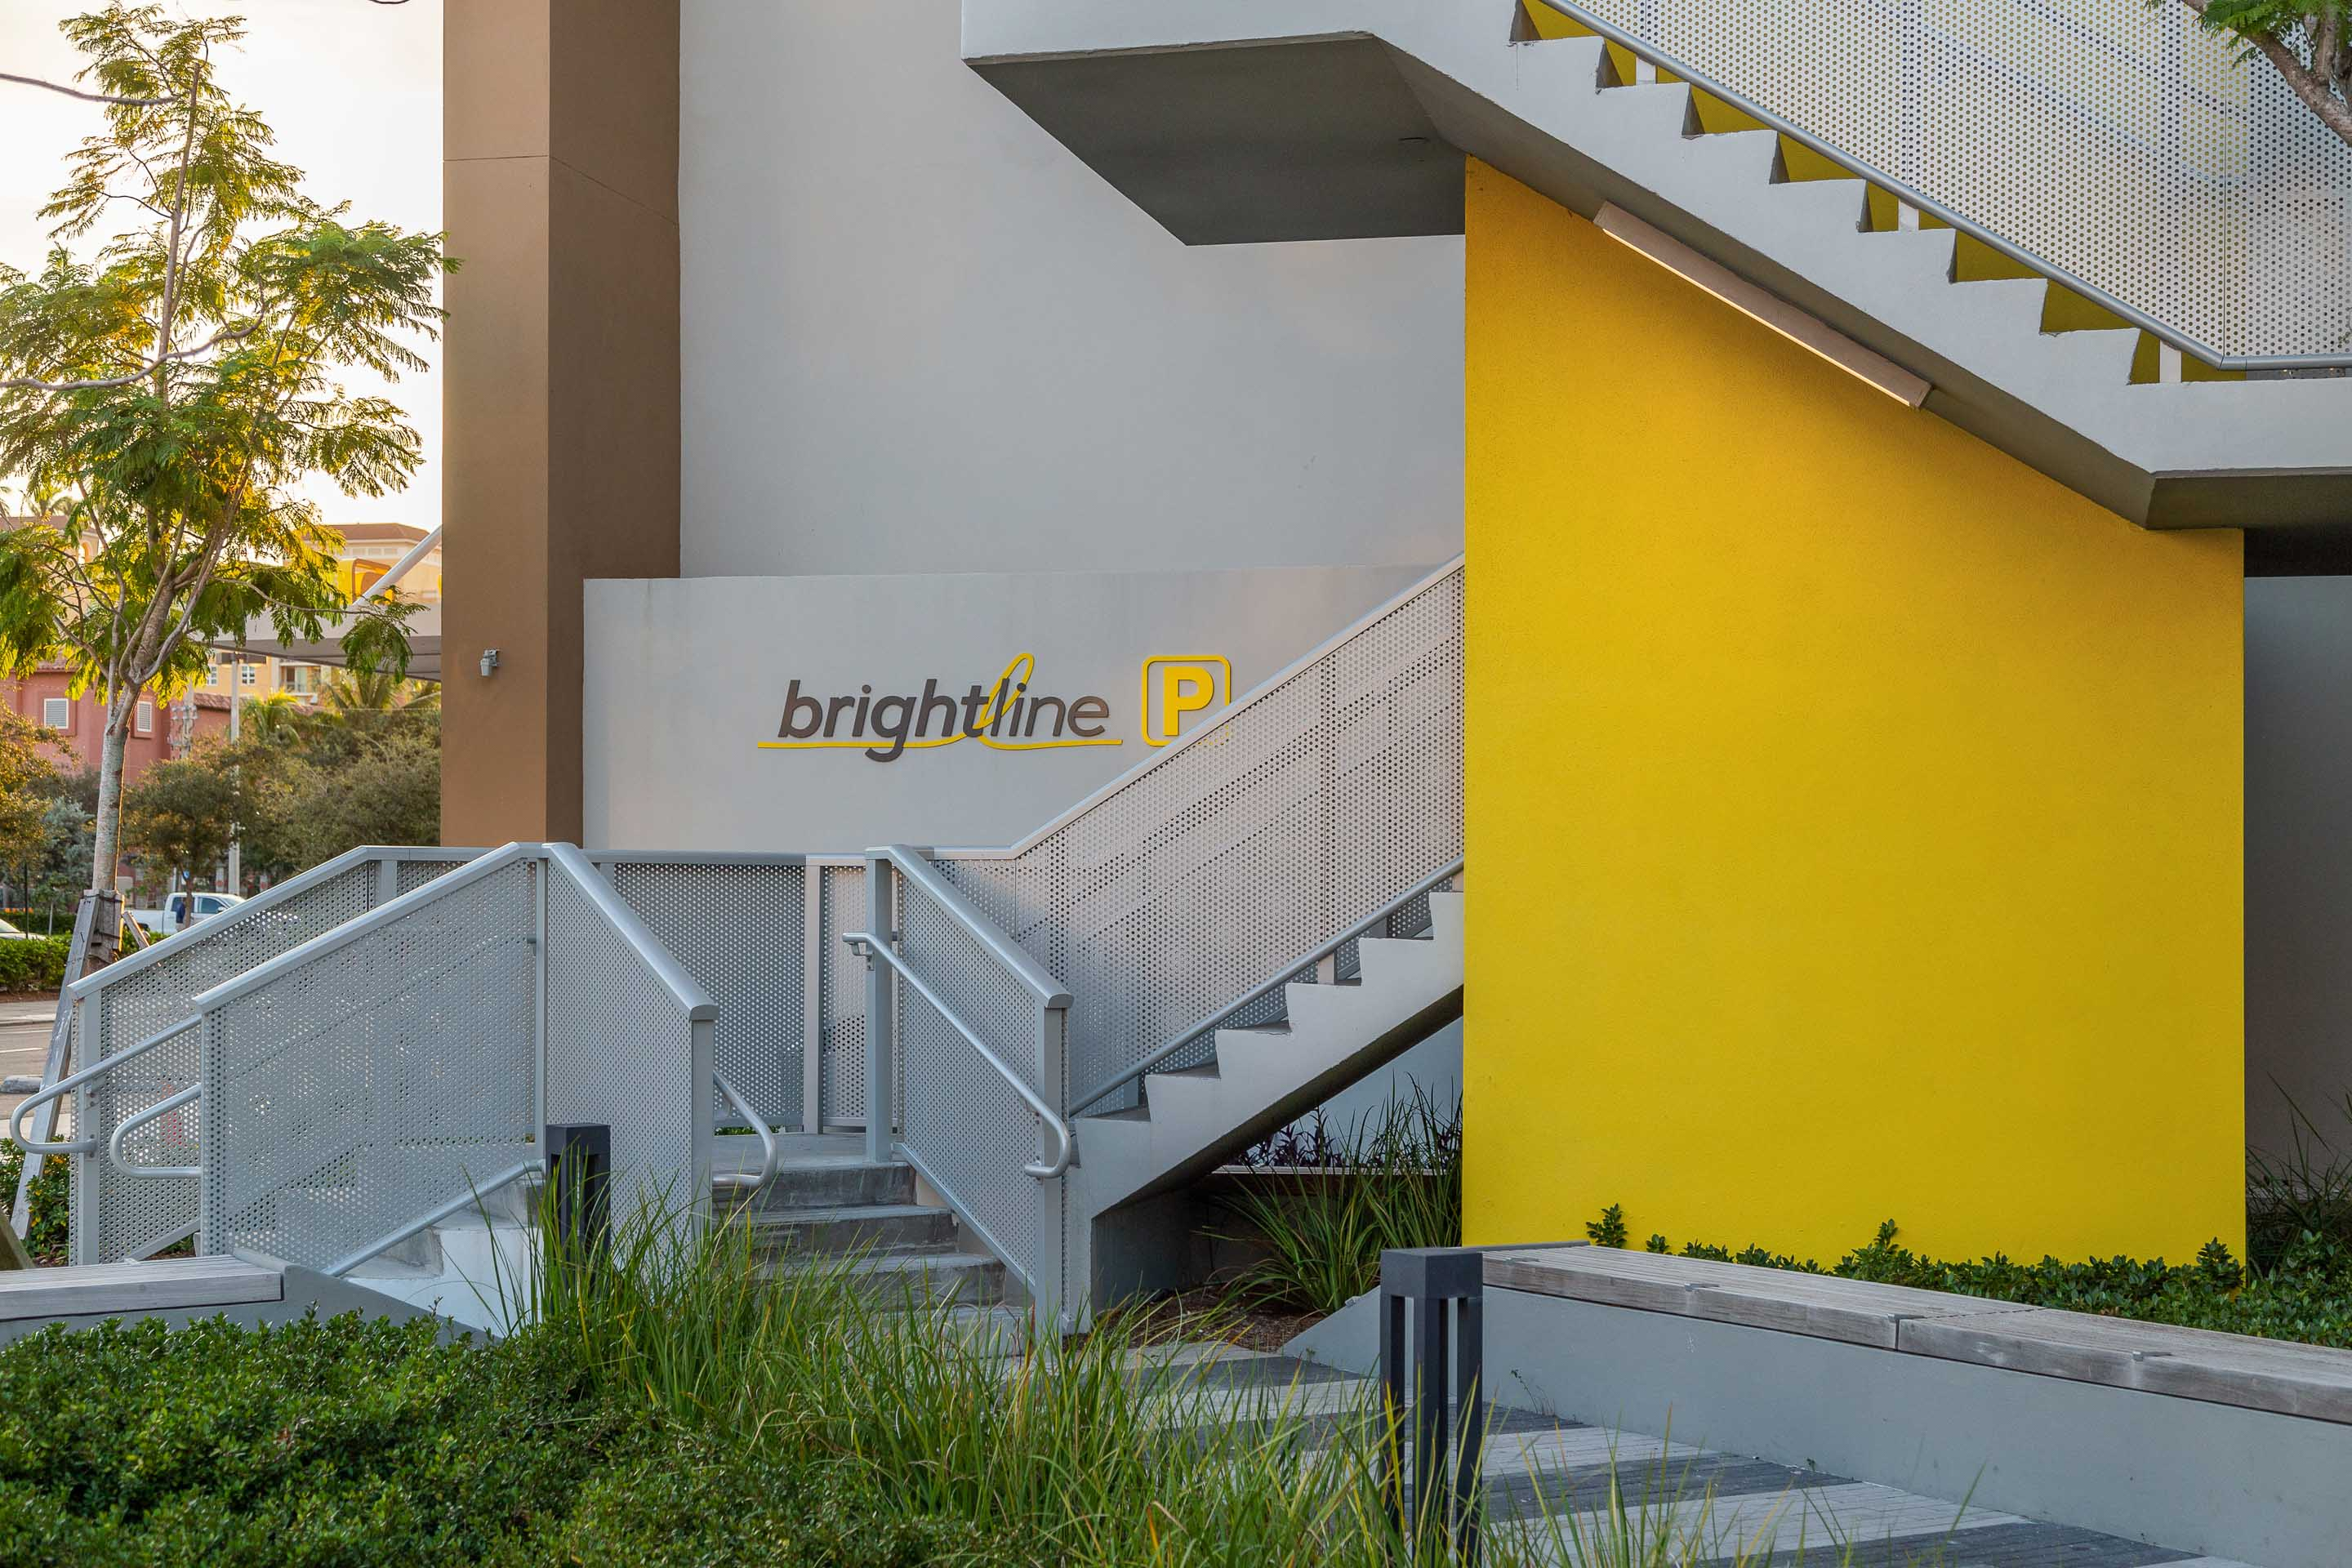 Perforated parking garage for Park-Line Palm Beaches at Brightline West Palm Beach Station.